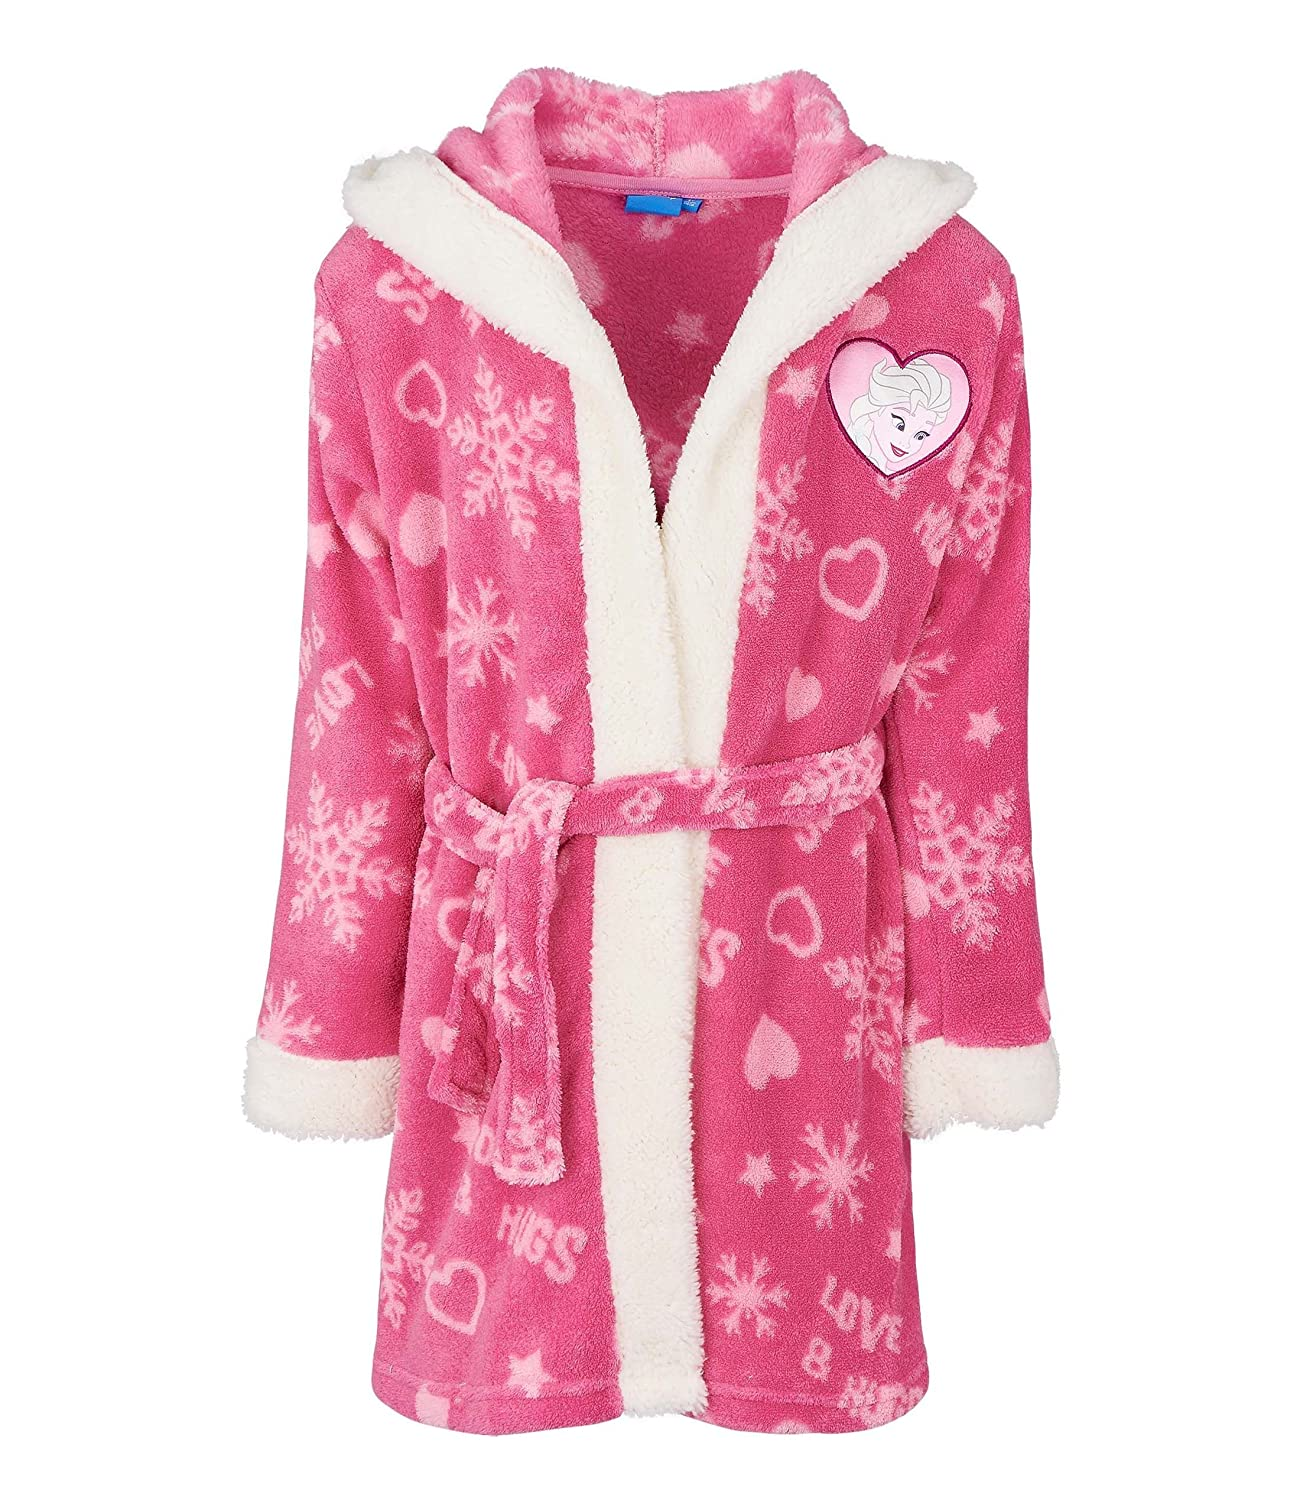 Disney Frozen Coral Fleece Bathrobe with Hood, Pink